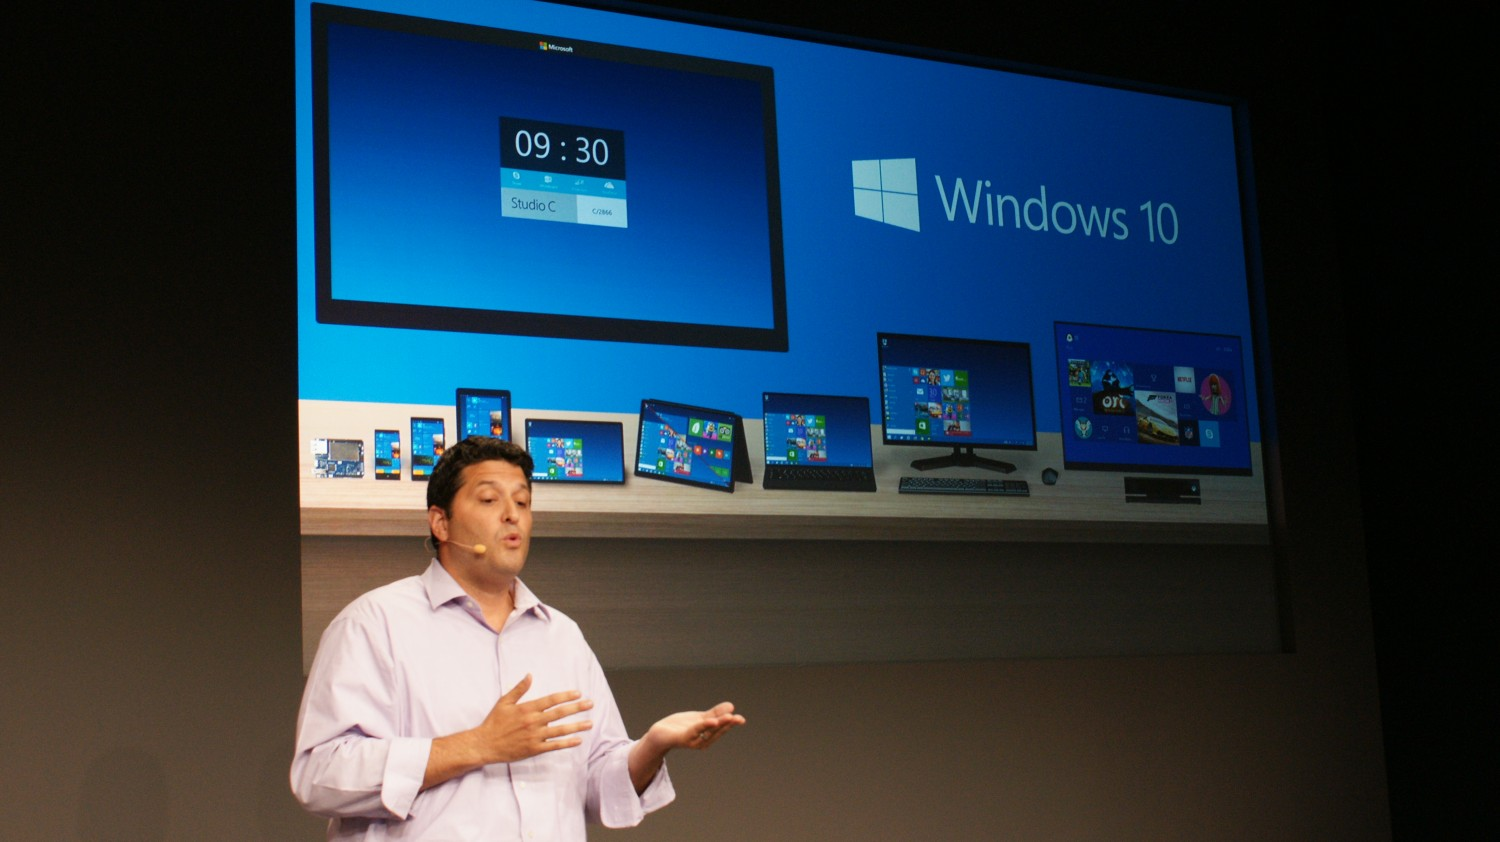 Microsoft Announces Windows 10 - The Next Web